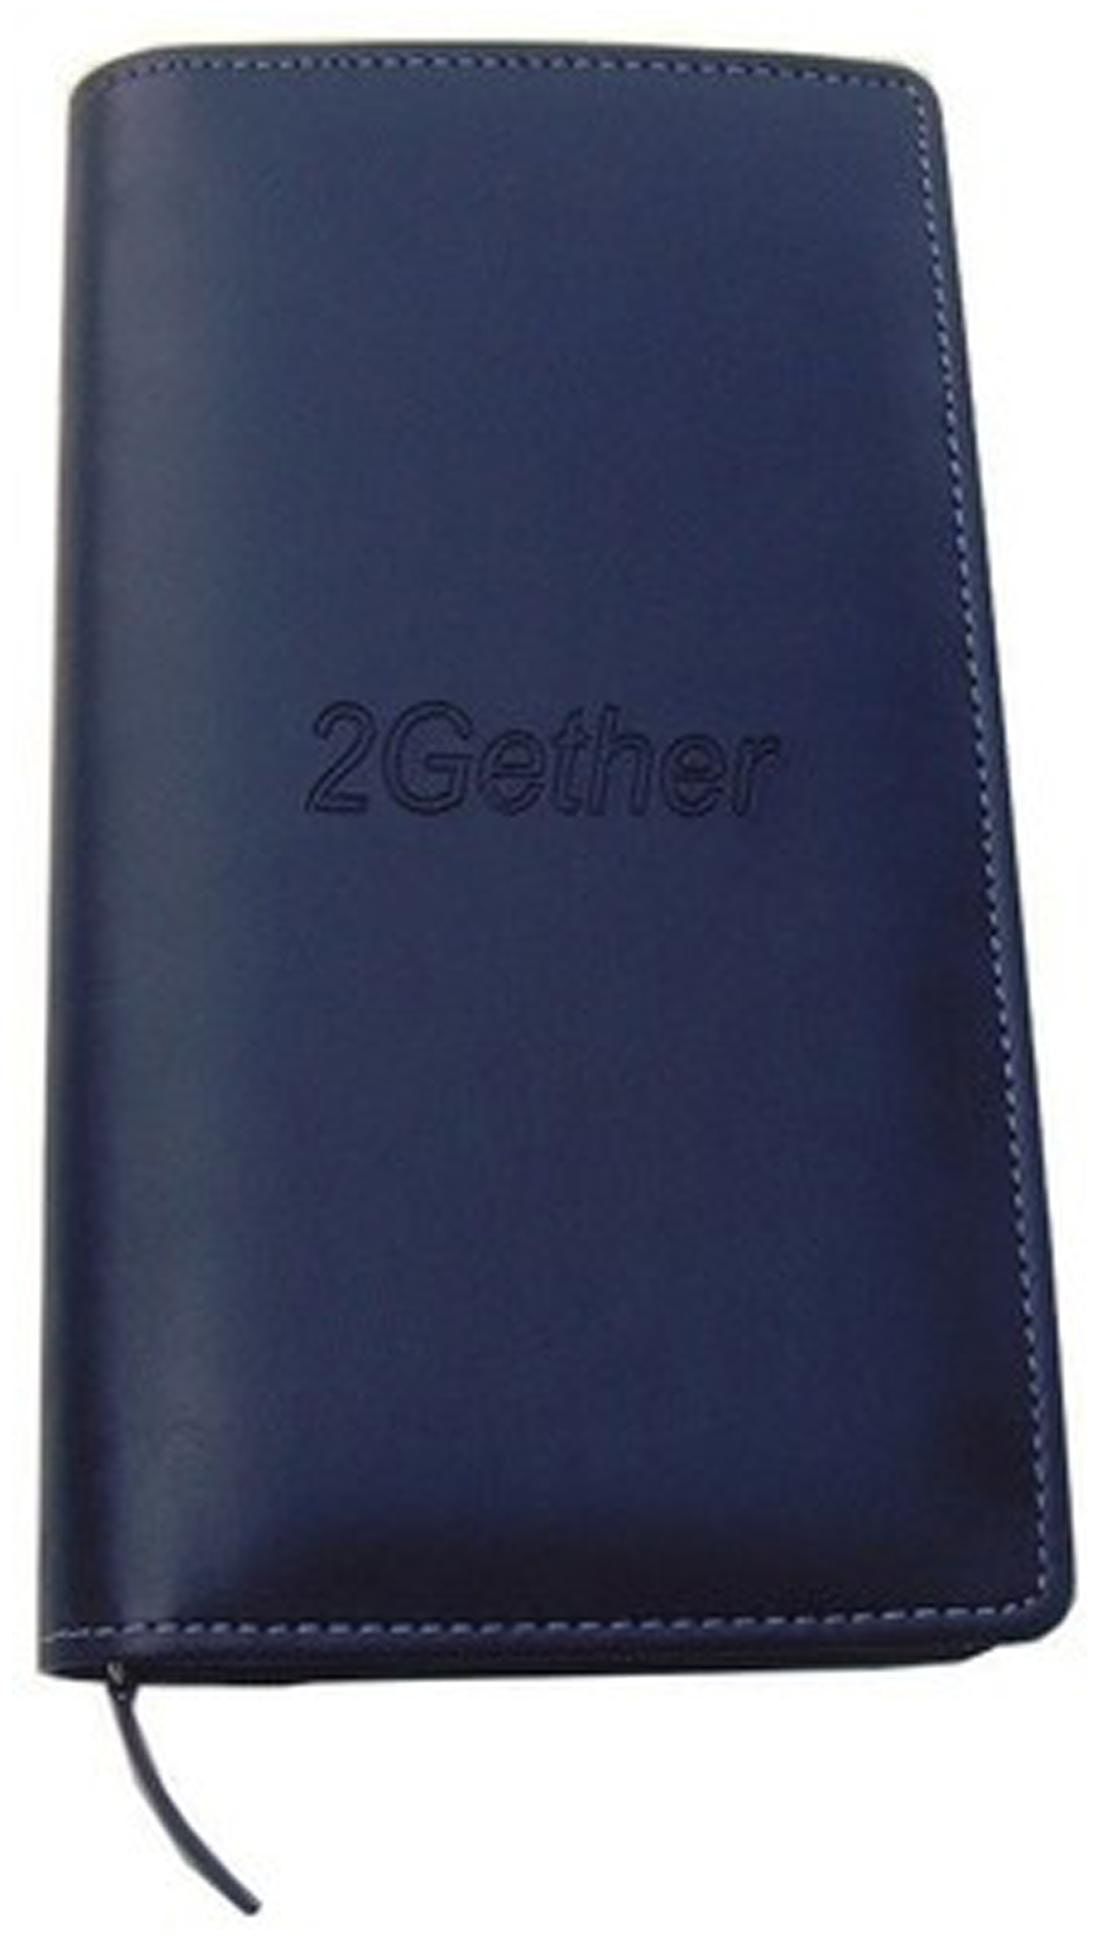 ffdae234f https   assetscdn1.paytm.com images catalog product . Sukeshcraft 2Gether - Multiple  Passport Holder (Blue)